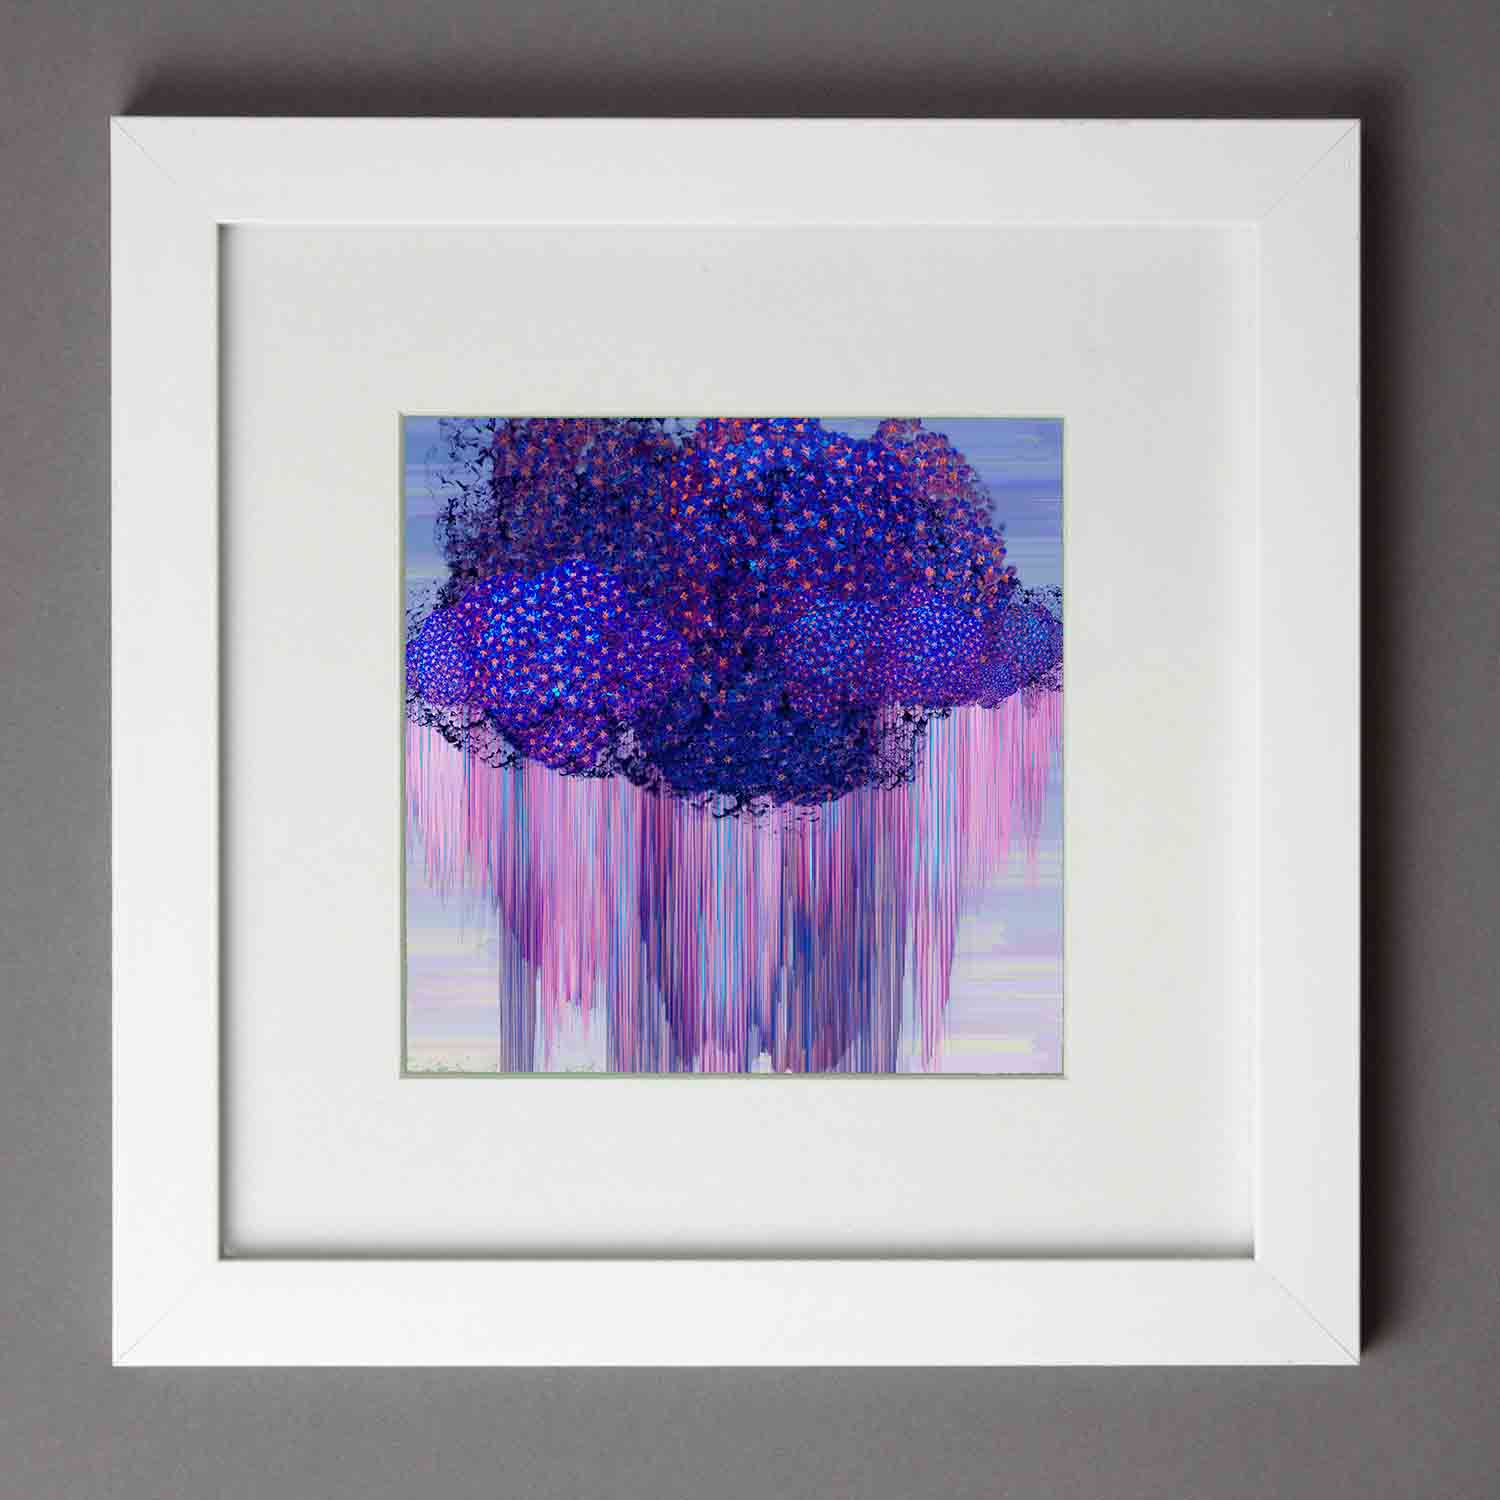 visual-flux-purple-rain-smallframe.jpg